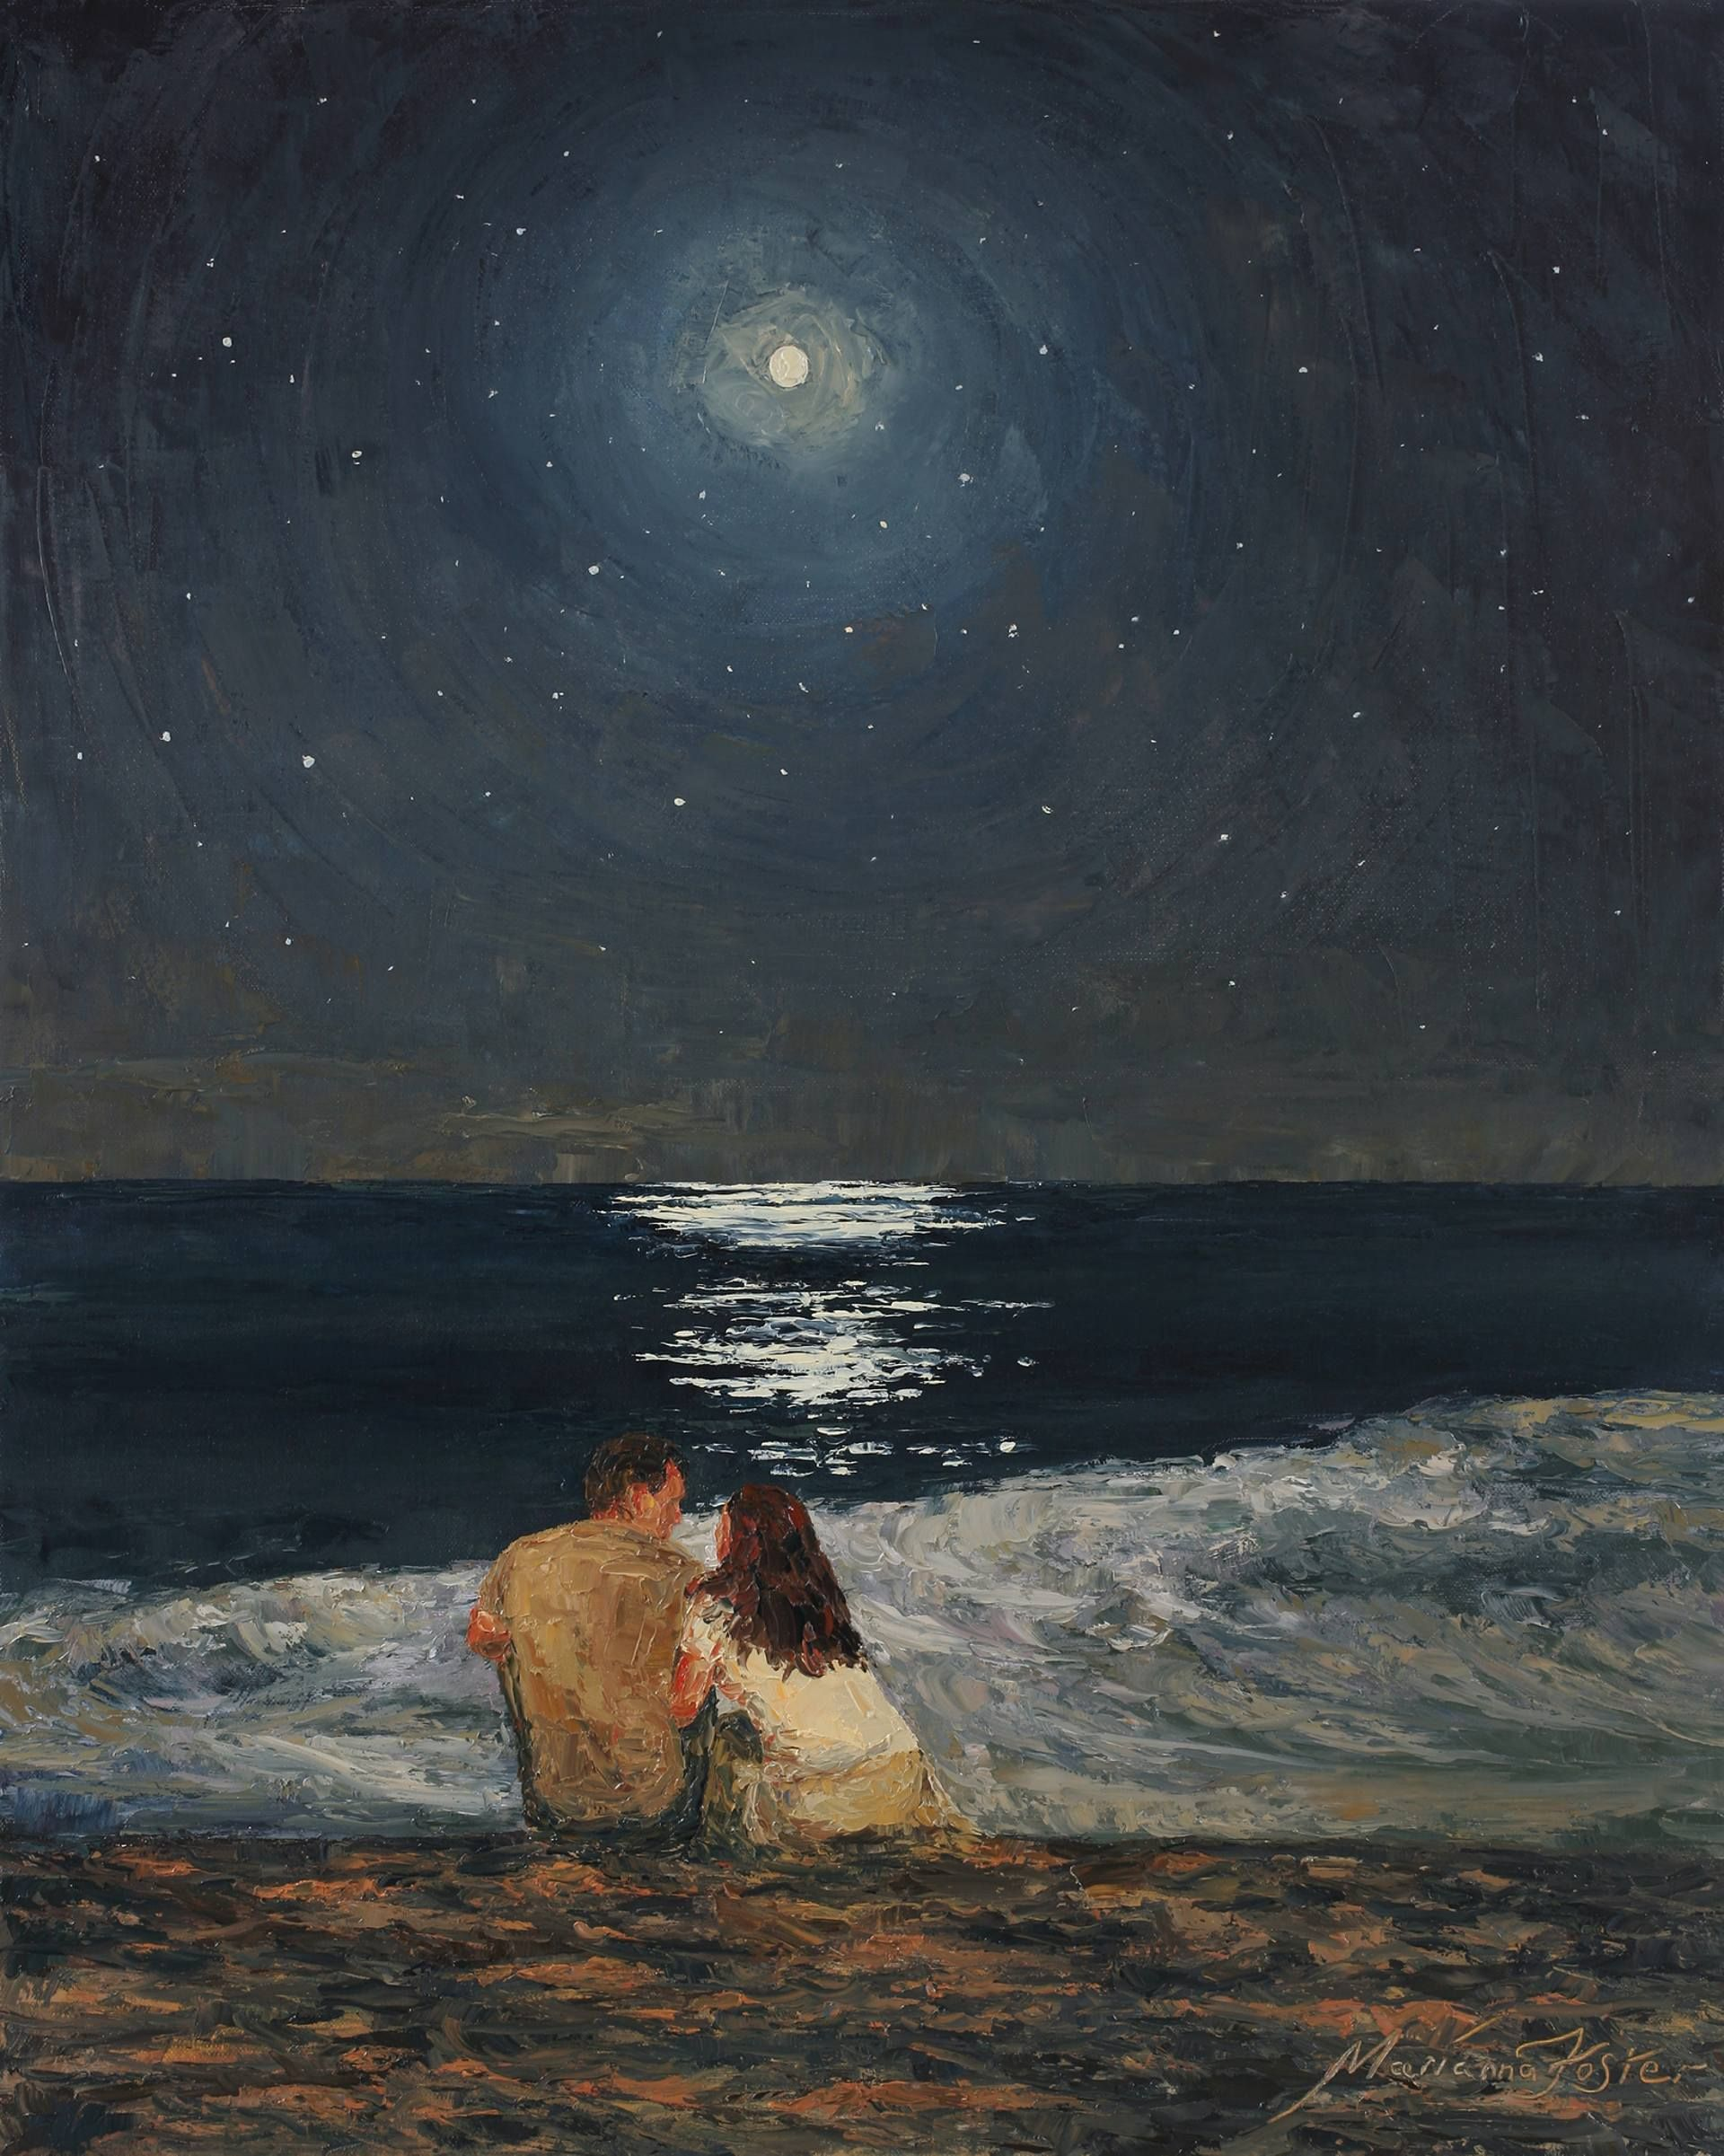 Moonlight Over The Ocean Painting by Marianna Foster | Saatchi Art